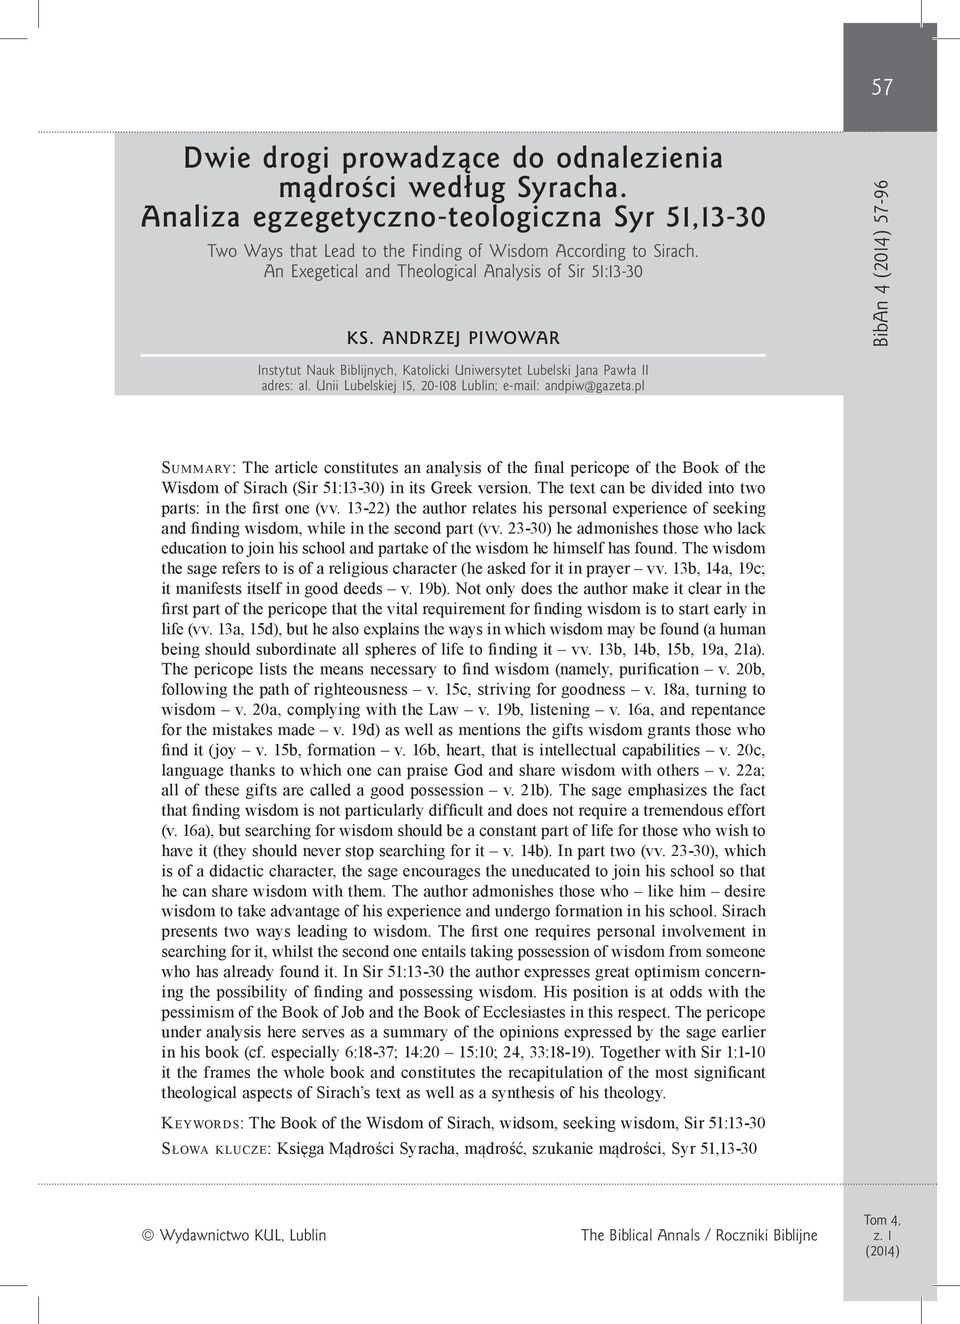 Unii Lubelskiej 15, 20-108 Lublin; e-mail: andpiw@gazeta.pl Summary: The article constitutes an analysis of the final pericope of the Book of the Wisdom of Sirach (Sir 51:13-30) in its Greek version.